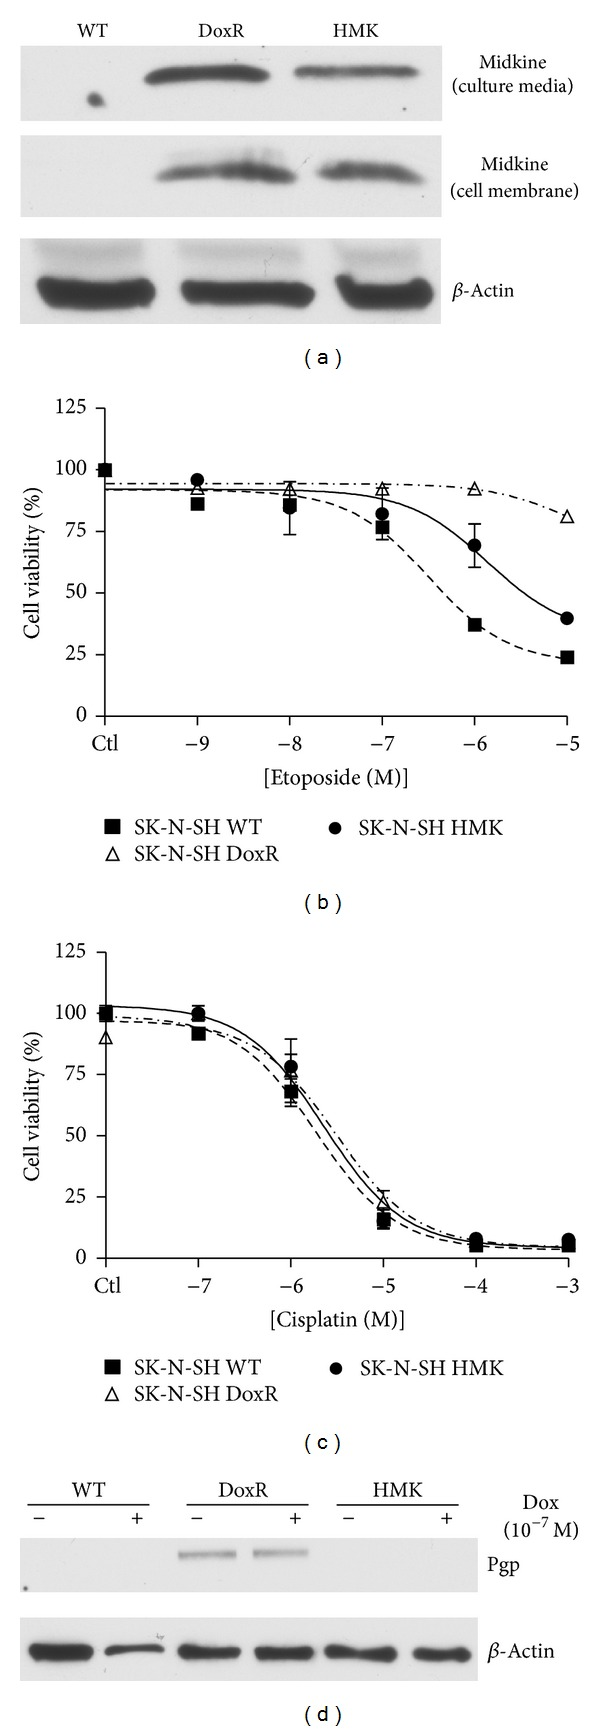 Effect of midkine overexpression on wild type cell survival. A midkine overexpressing SK-N-SH cell line (SK-N-SH HMK) was created as previously described [ 6 ]. (a) Midkine expression in the medium of wild type (WT), doxorubicin resistant (DoxR), and HMK cells were analyzed using western blot. SK-N-SH WT, DoxR, and HMK were cultured in 25 cm flasks to 80% confluence. Medium was then exchanged for 2 mL of low fetal bovine serum culture medium and cultured for an additional 48 hours. Cultured medium was then collected and frozen at −80°C prior to being subjected to western blot. The volume of medium loaded on the gel was normalized based on cell count in the flask prior to medium collection. Cell membranes were isolated through a well-established protocol. We have previously demonstrated that midkine transfected cells (HMK) have acquired some doxorubicin resistance [ 6 ]. The MTT cell survival assay was performed to determine if SK-H-SH HMK cells have acquired resistance to other chemotherapeutic drugs including (b) etoposide and (c) cisplatin. (d) SK-N-SH WT, DoxR, and HMK cells were treated with or without doxorubicin at 10 −7 M for 24 hours prior to collection of cell lysates. Proteins were extracted and probed using western blot for Pgp and β -actin.